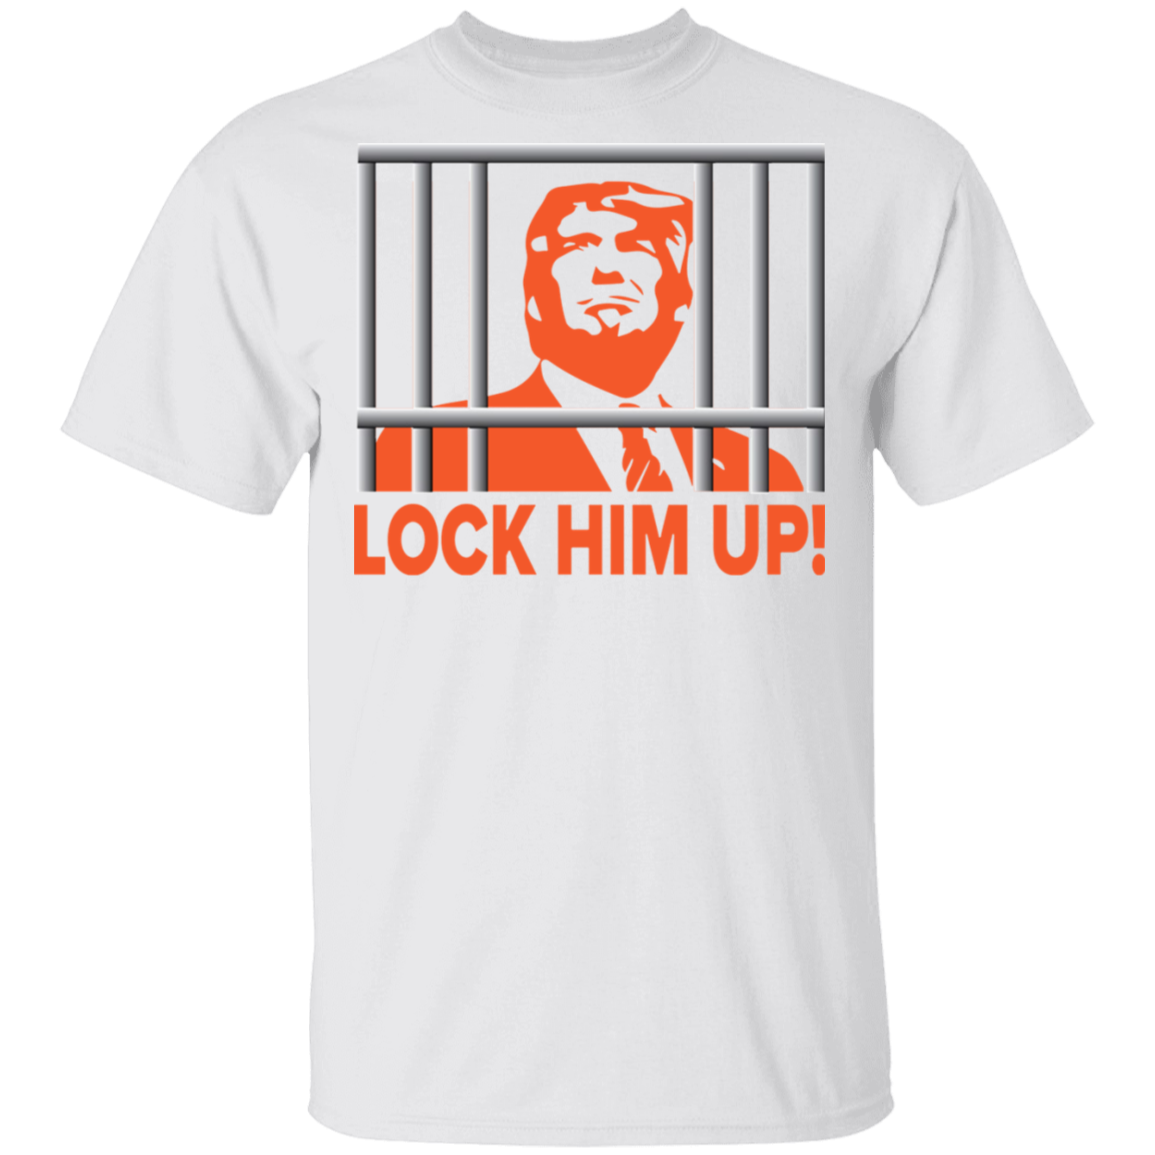 Trump Lock Him Up T-Shirt Funny Anti Trump Political Shirt Republican Voters Against Trump Ad